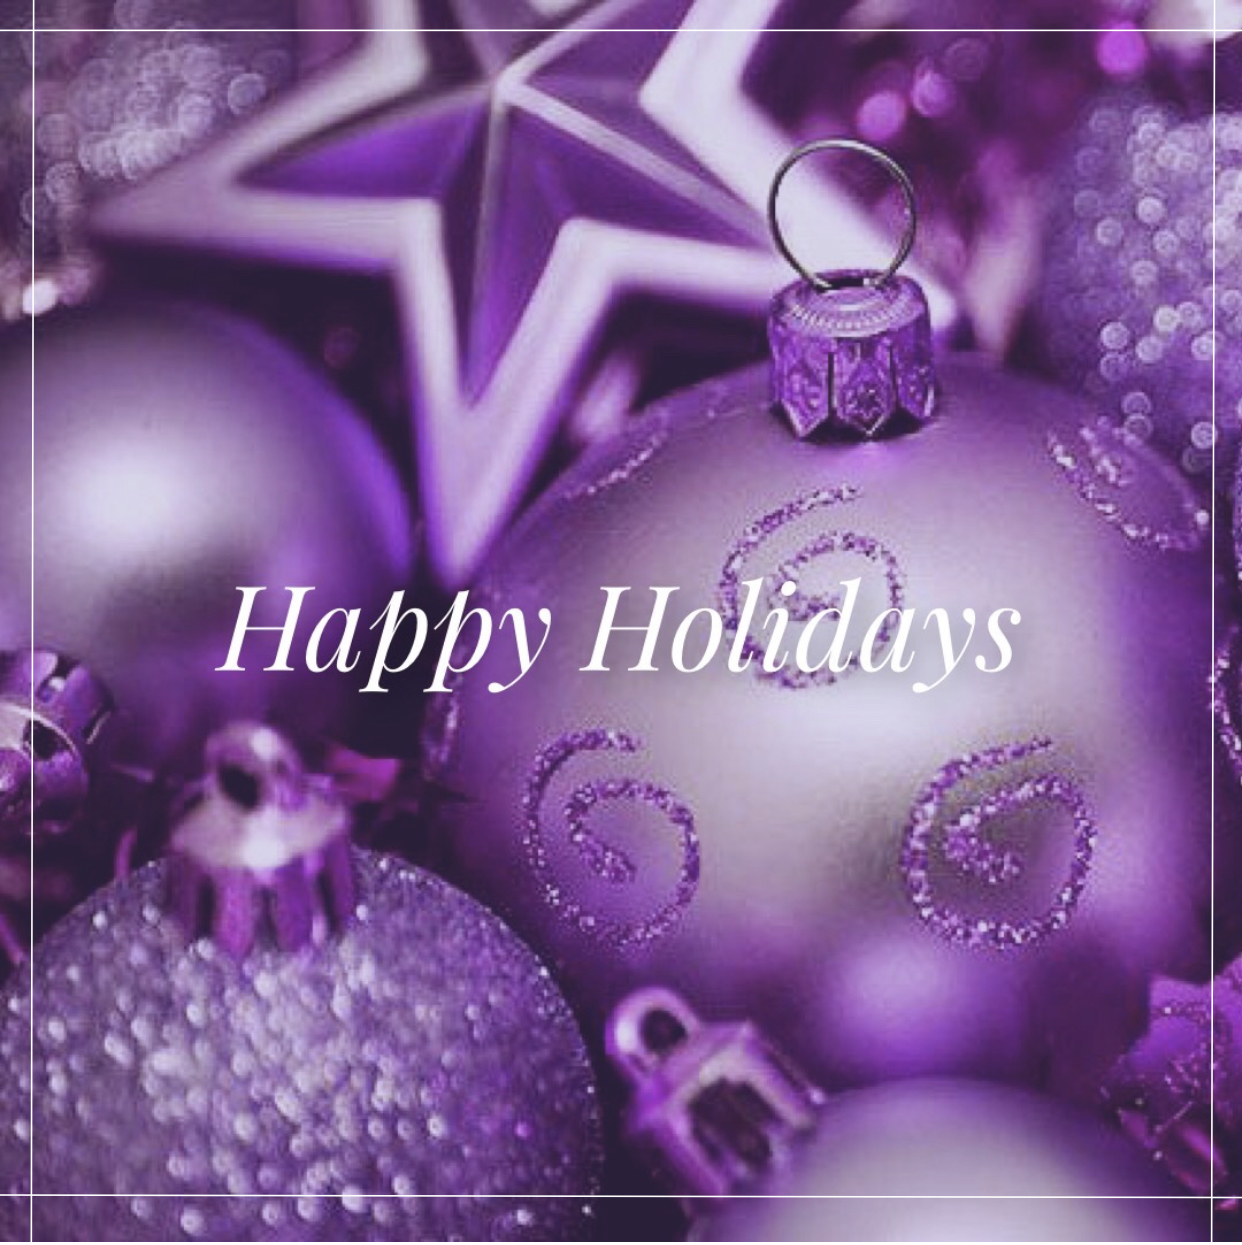 Happy Holidays from IBC Care!